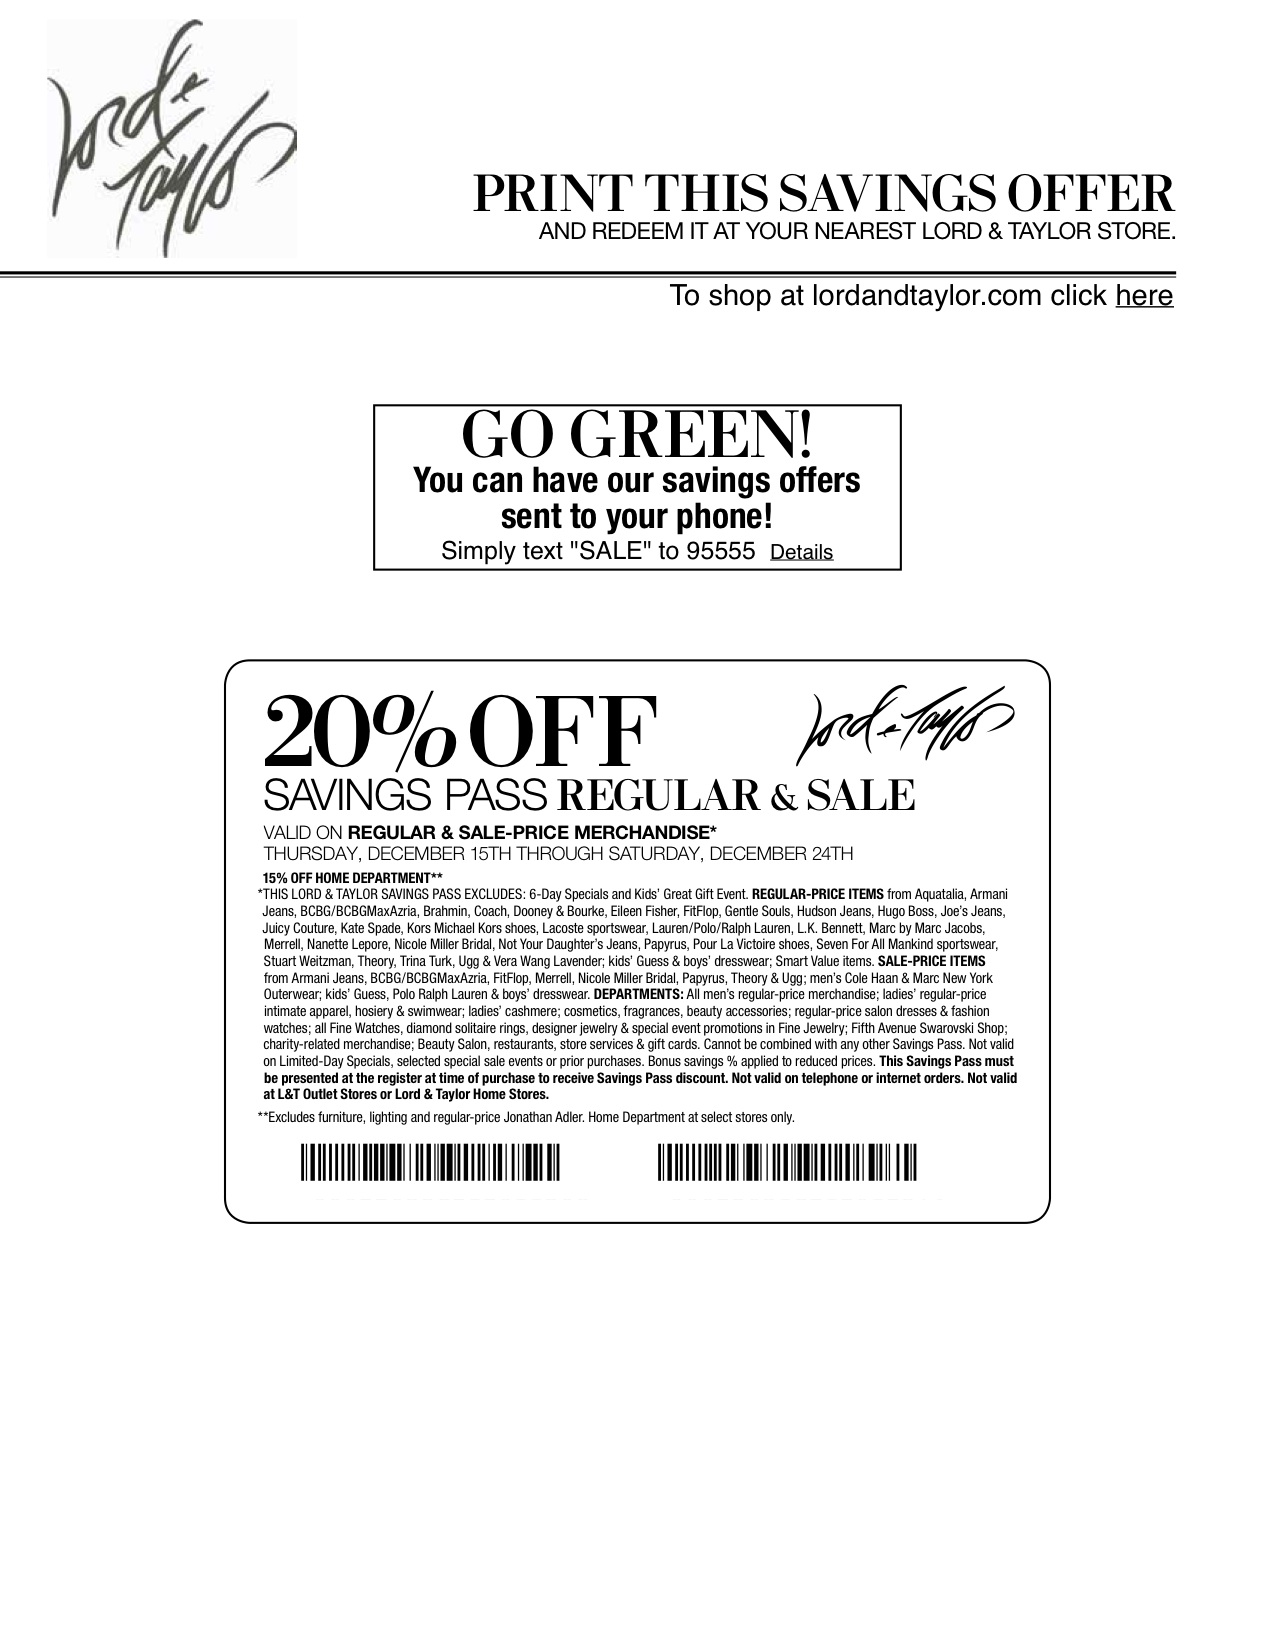 photograph about Lord and Taylor Printable Coupon called Lord and taylor coupon code may well 2018 / Philadelphia eagles